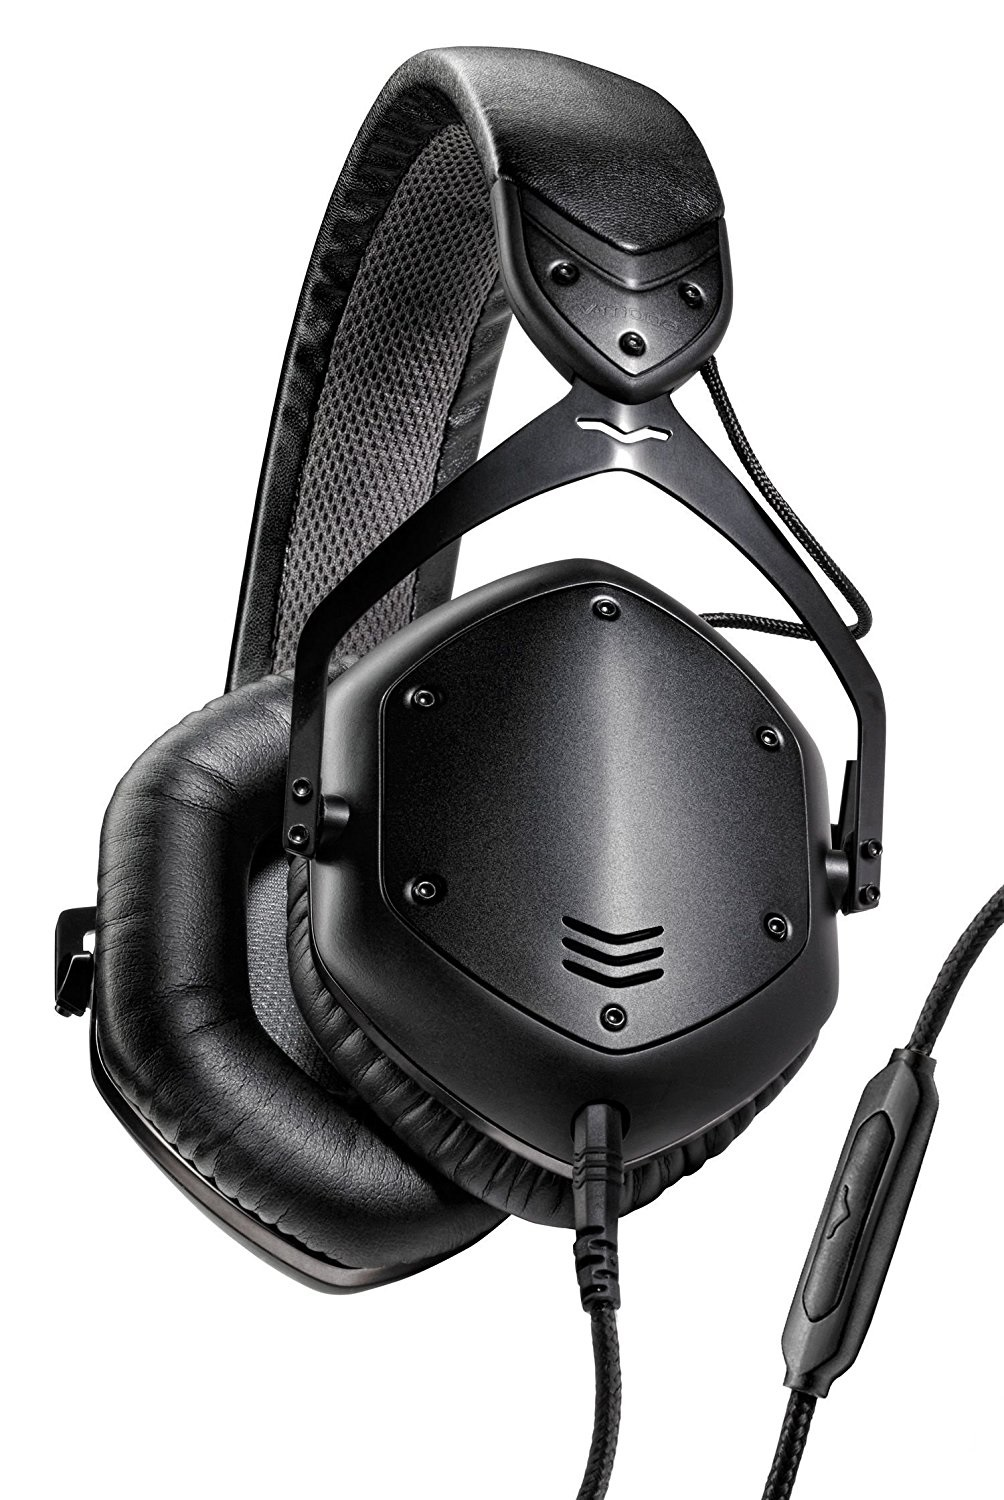 V-Moda LP2 Matte Black Metal